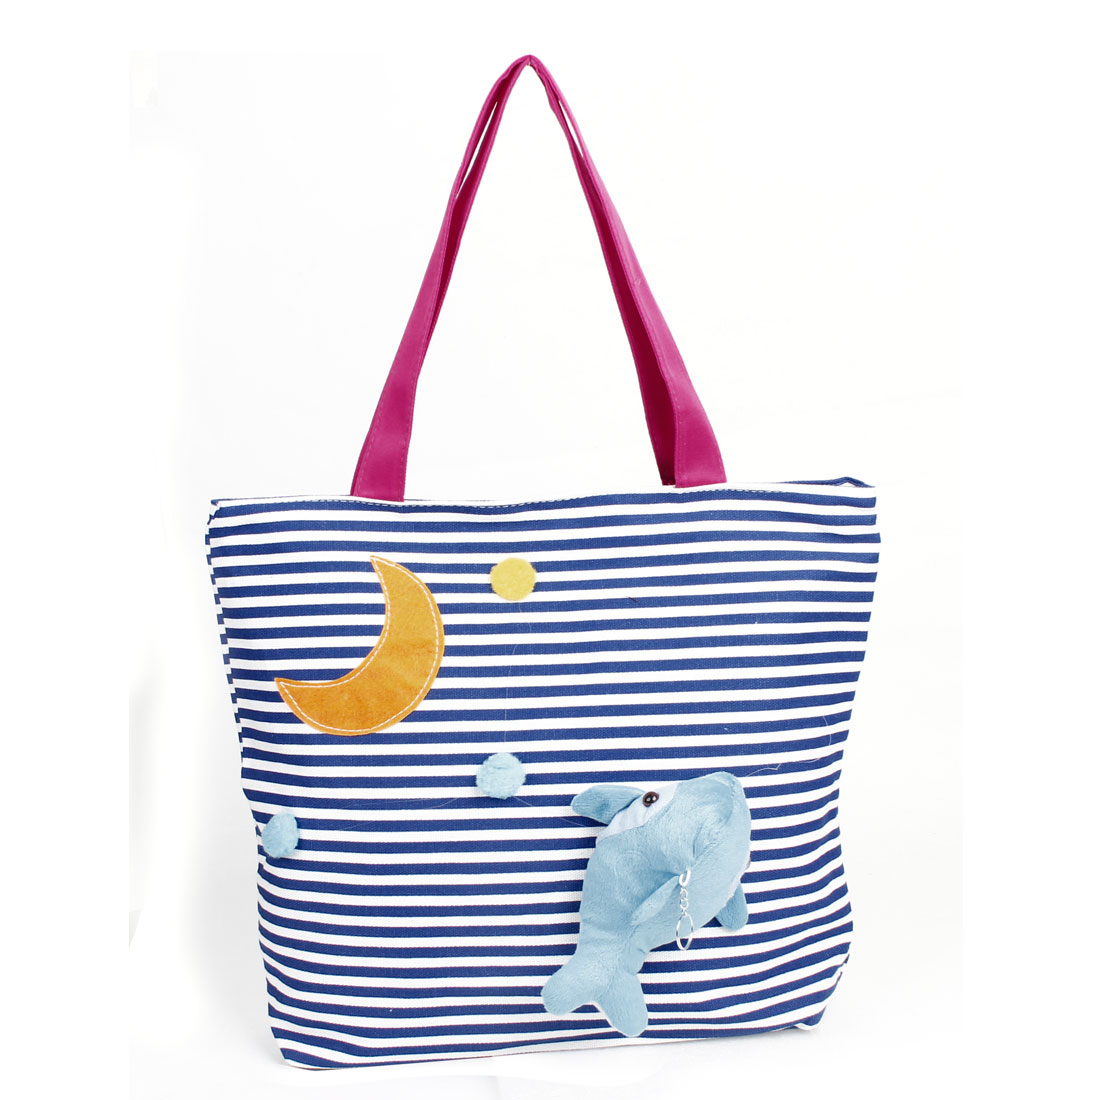 Strip Pattern Dolphin Decor Zipper Closure Handbag Tote Bag Blue White for Lady